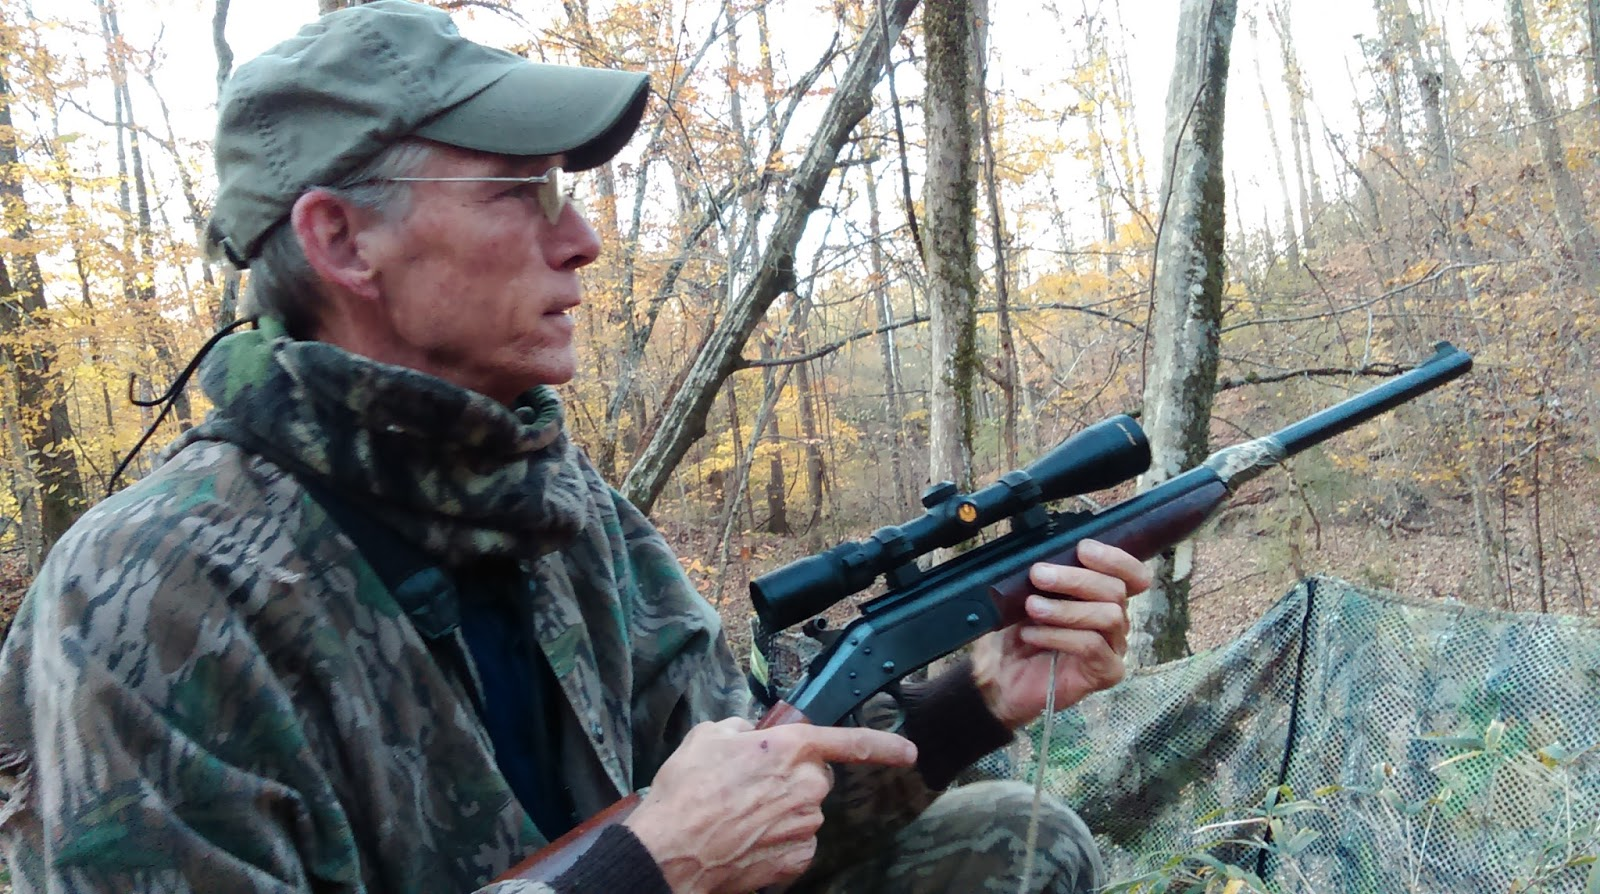 a personal experience of hunting a deer The 4 very best calibers for hunting big game  hunting caliber is really subjective based on personal experience and preference  excellent round for deer, elk .